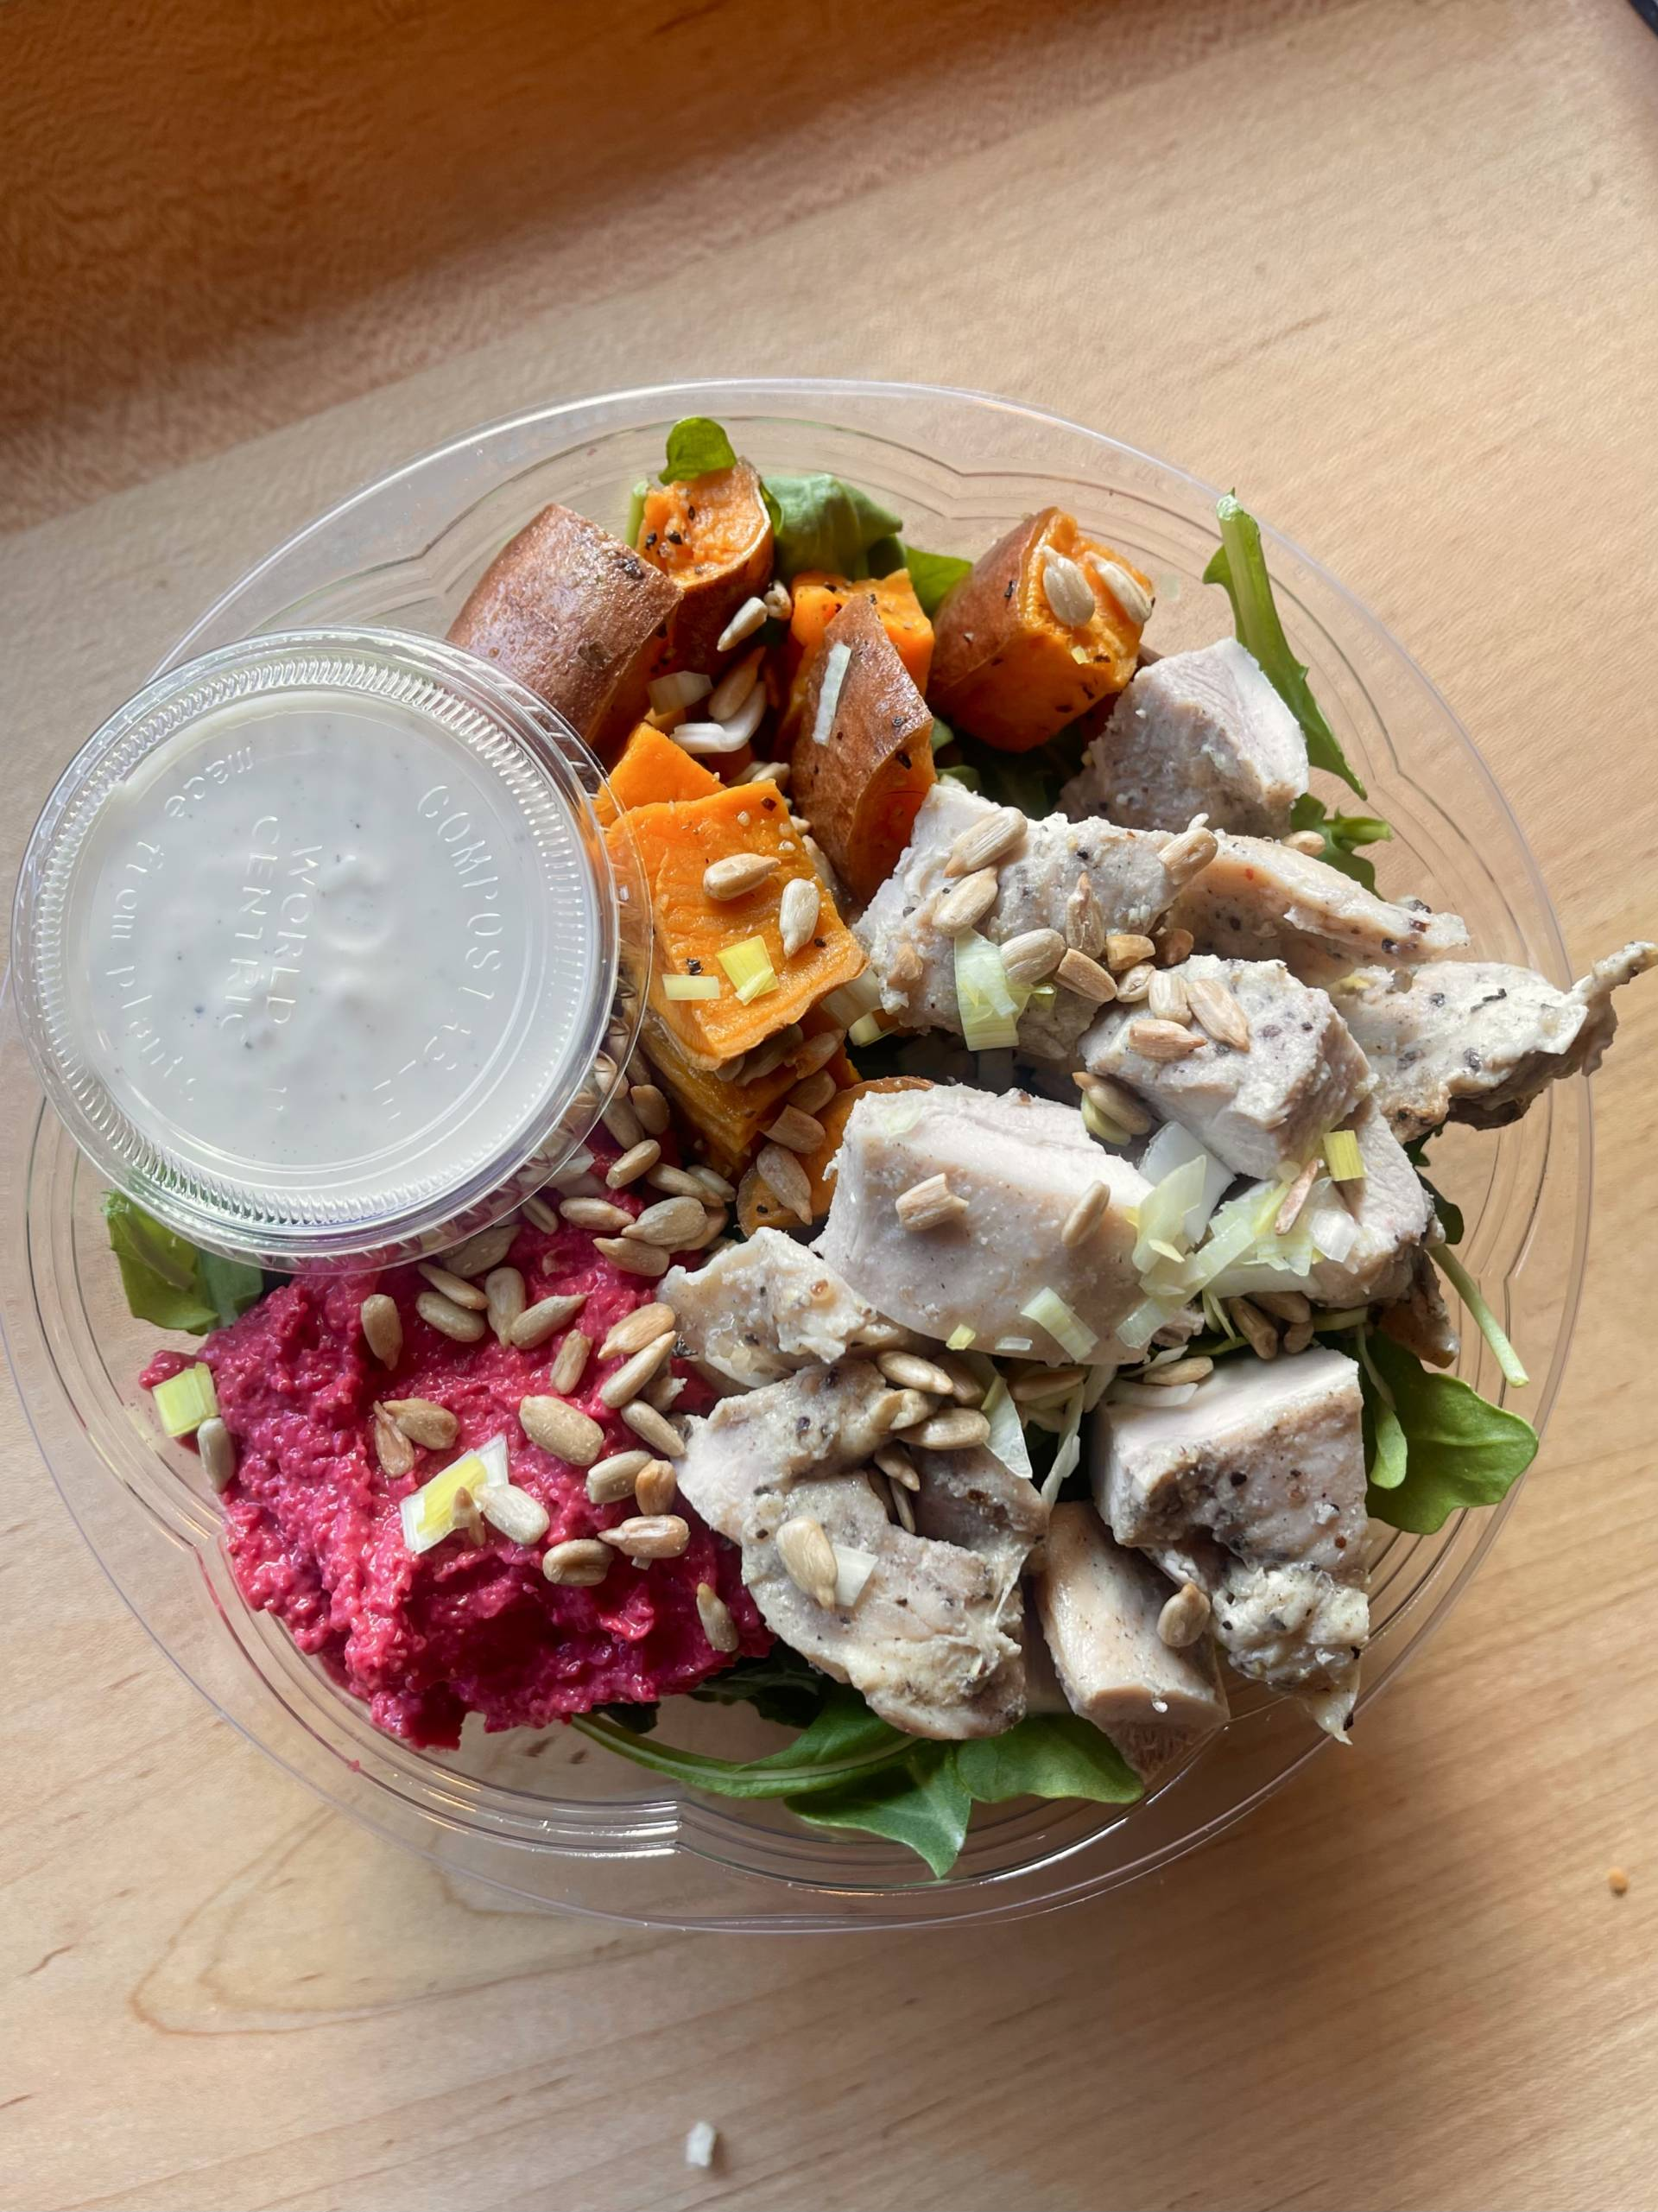 The Harvest Salad with Chicken